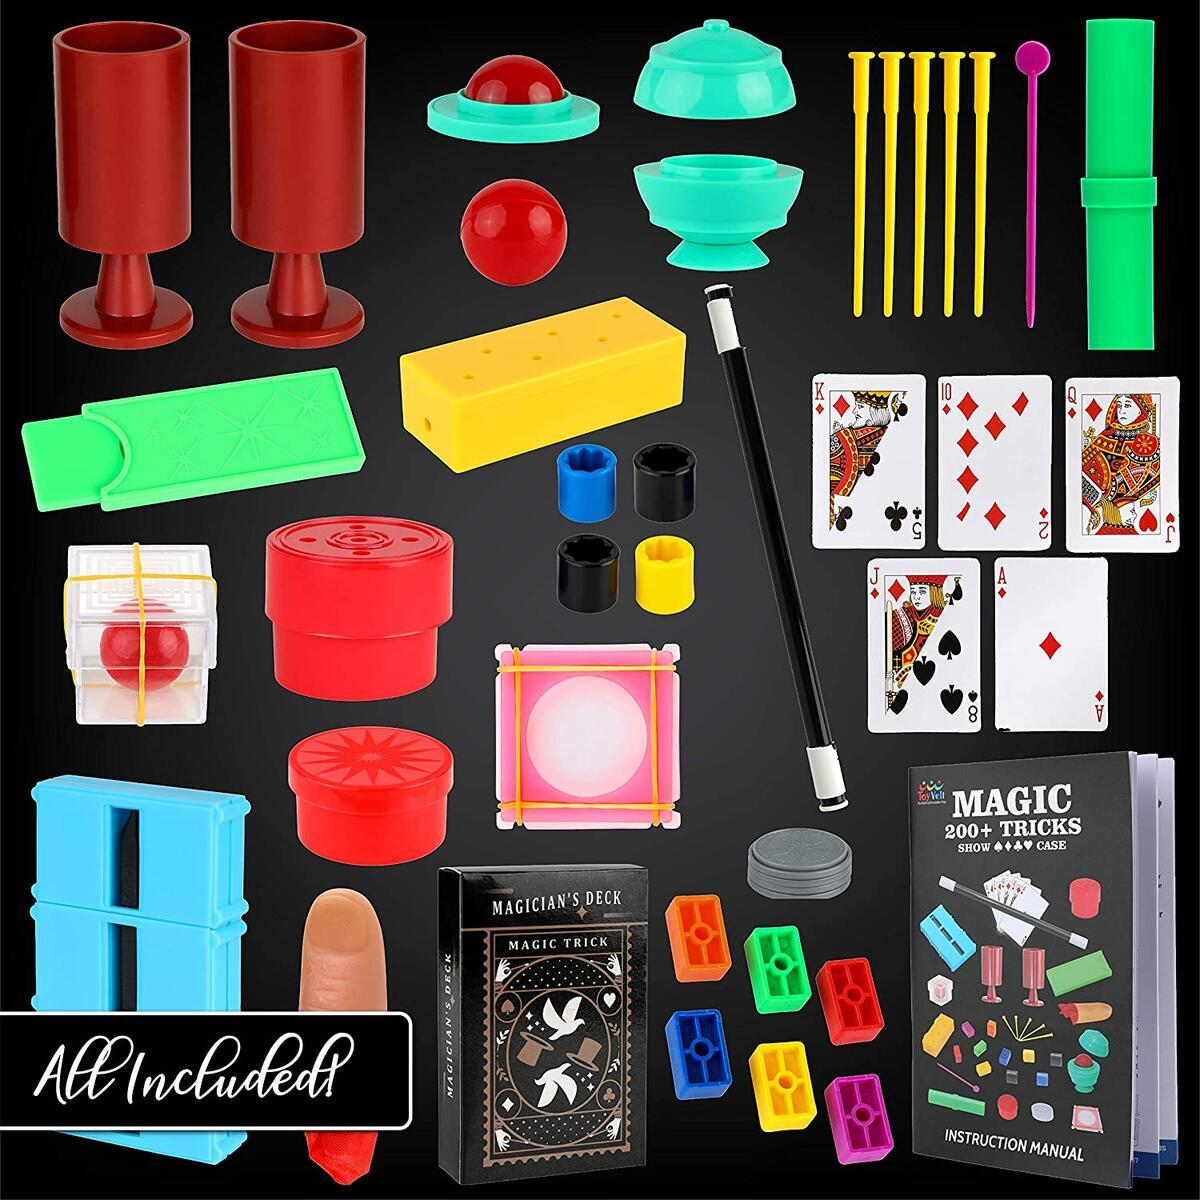 ToyVelt Magic Tricks Magic Set - Kids Magic Kit for Beginners with Over 200 Tricks and Instructions - Hours of Fun and Learning - for Boys and Girls Ages 5, 6,7 and Up